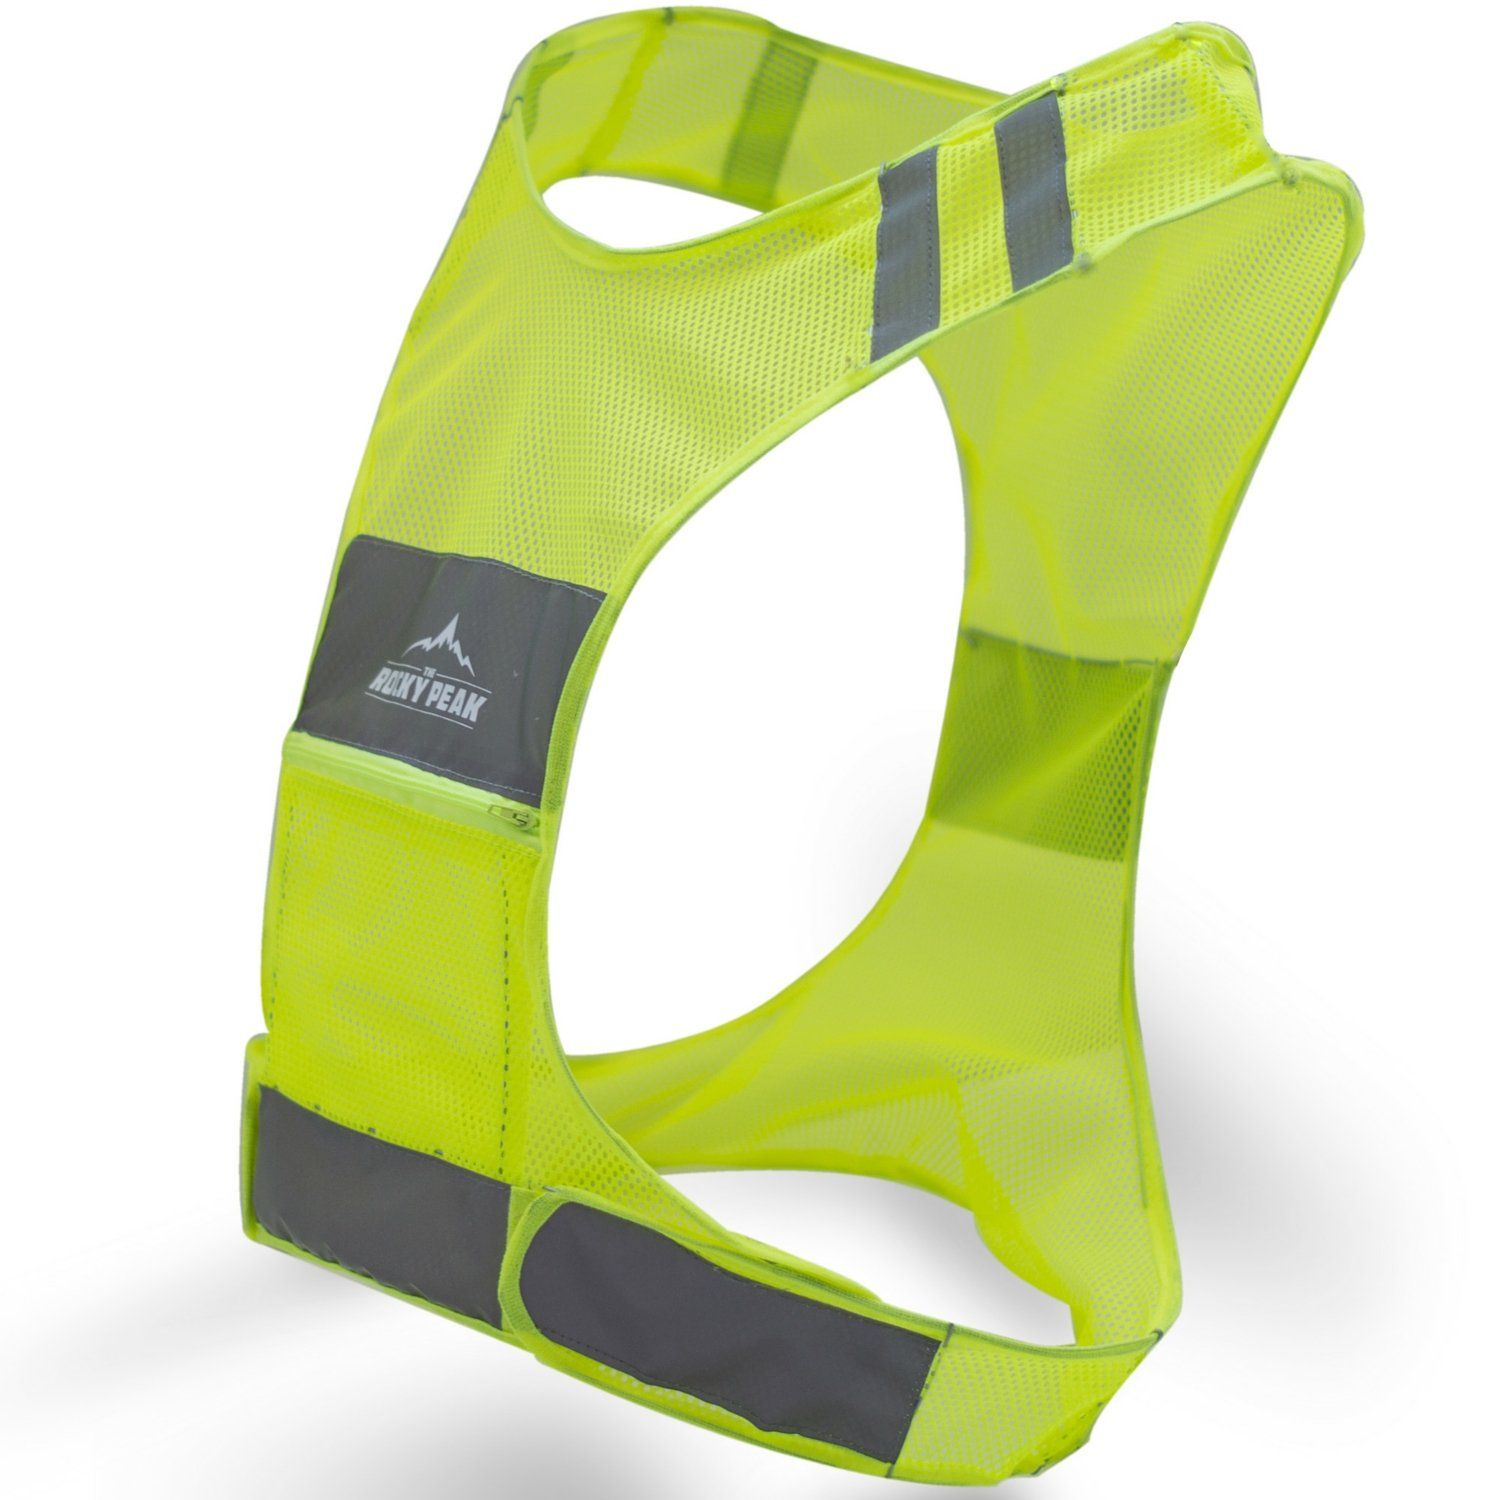 NEW Best Reflective Running Vest w/ Pocket 1